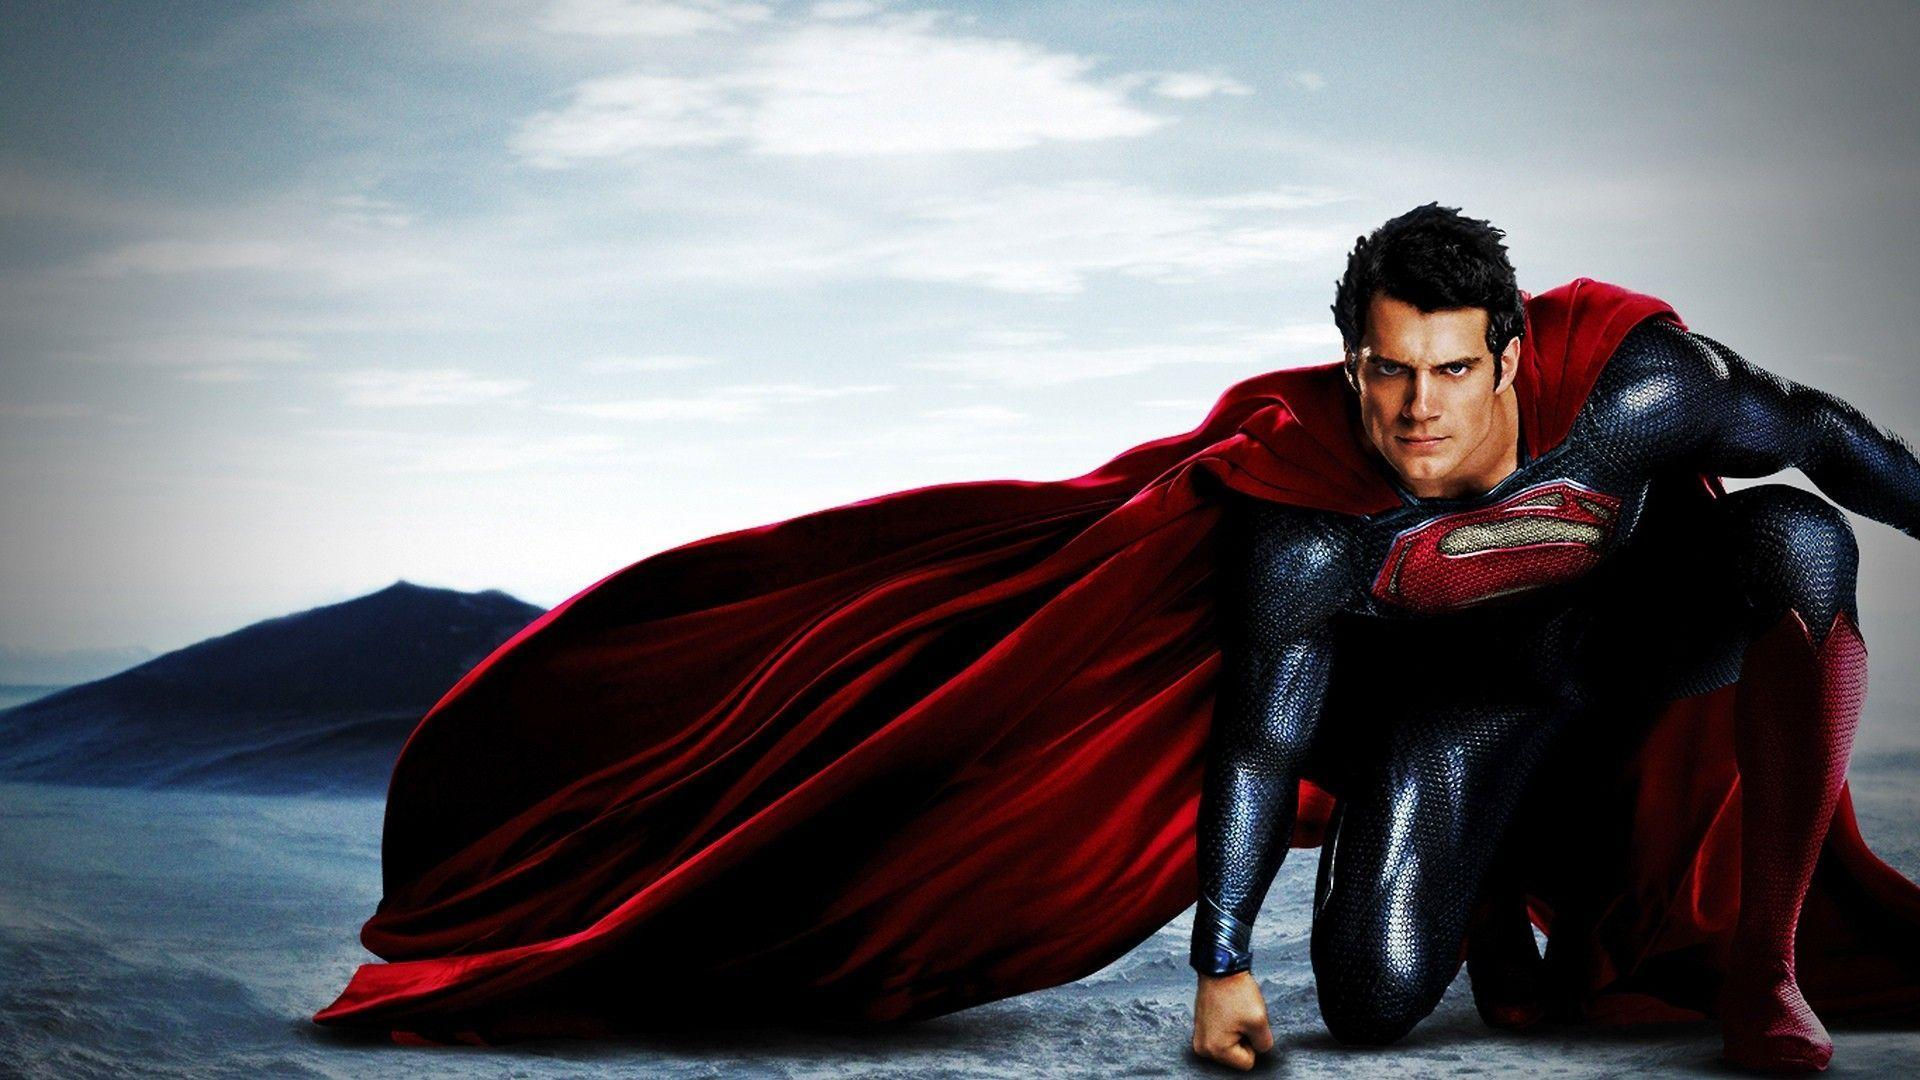 The Beautiful Superman Wallpaper For Your PC